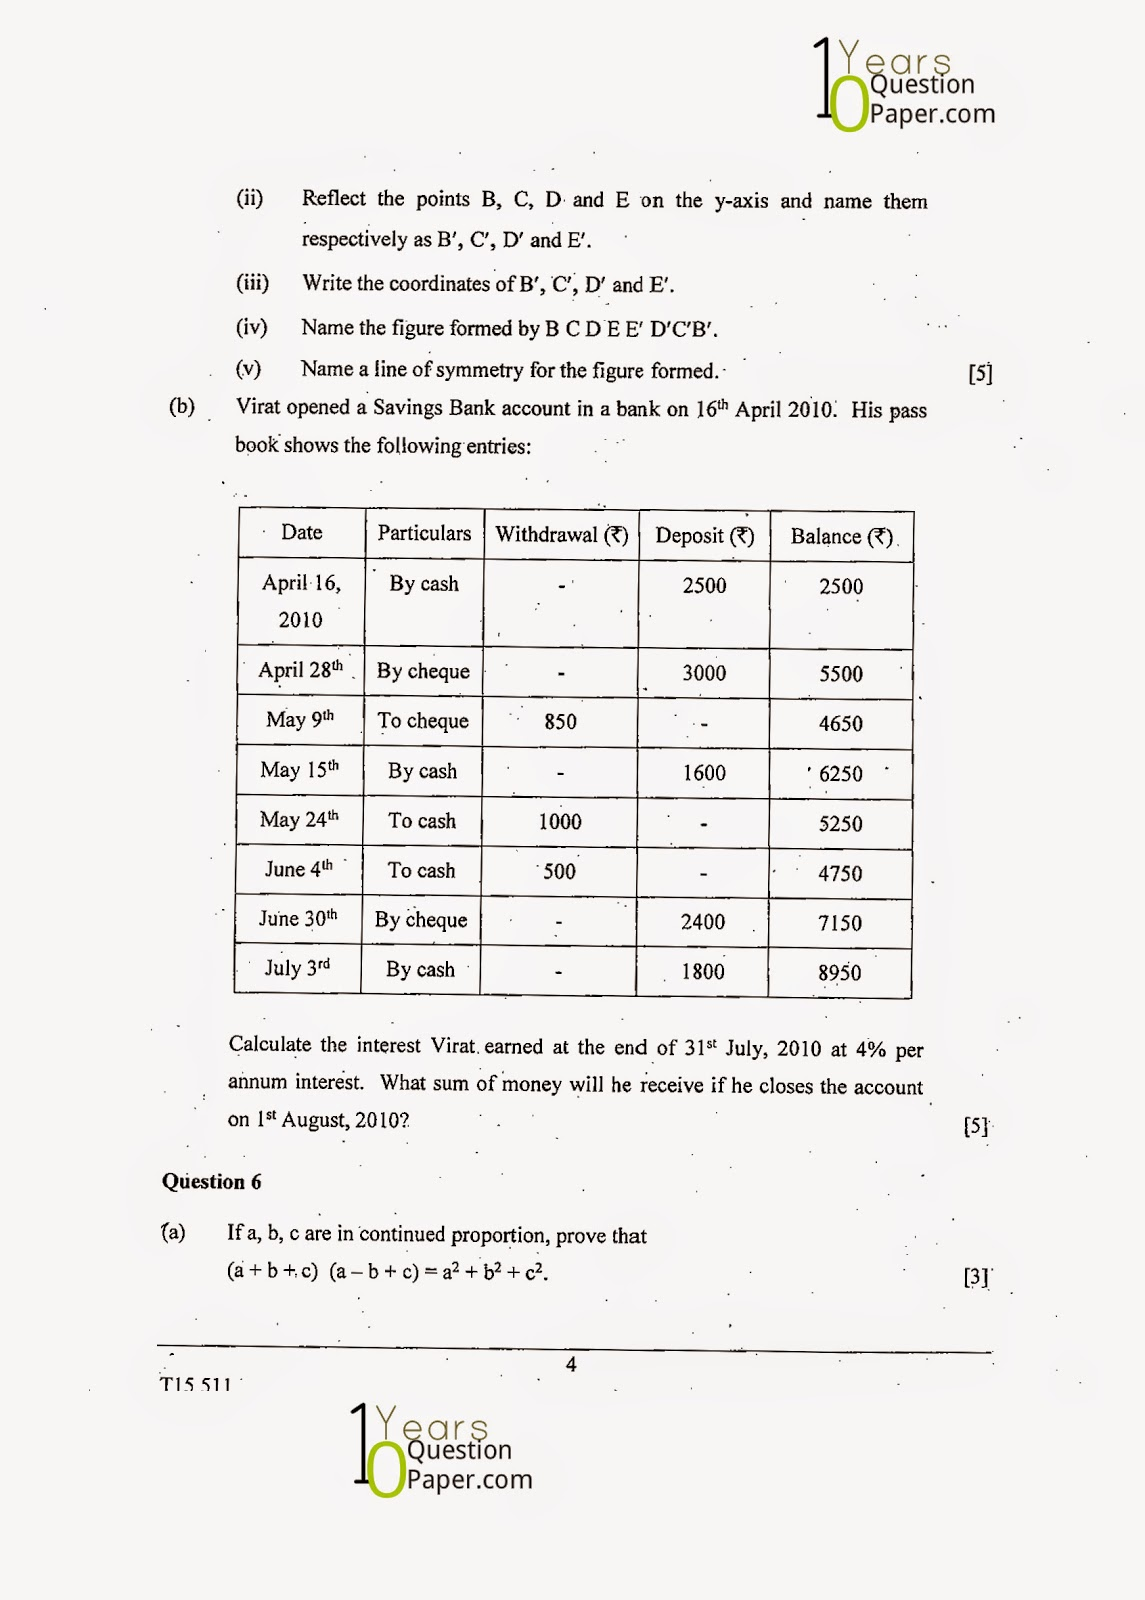 Icse 2015 mathematics class x 10 years question paper icse 2015 class 10th mathematics question paper malvernweather Images